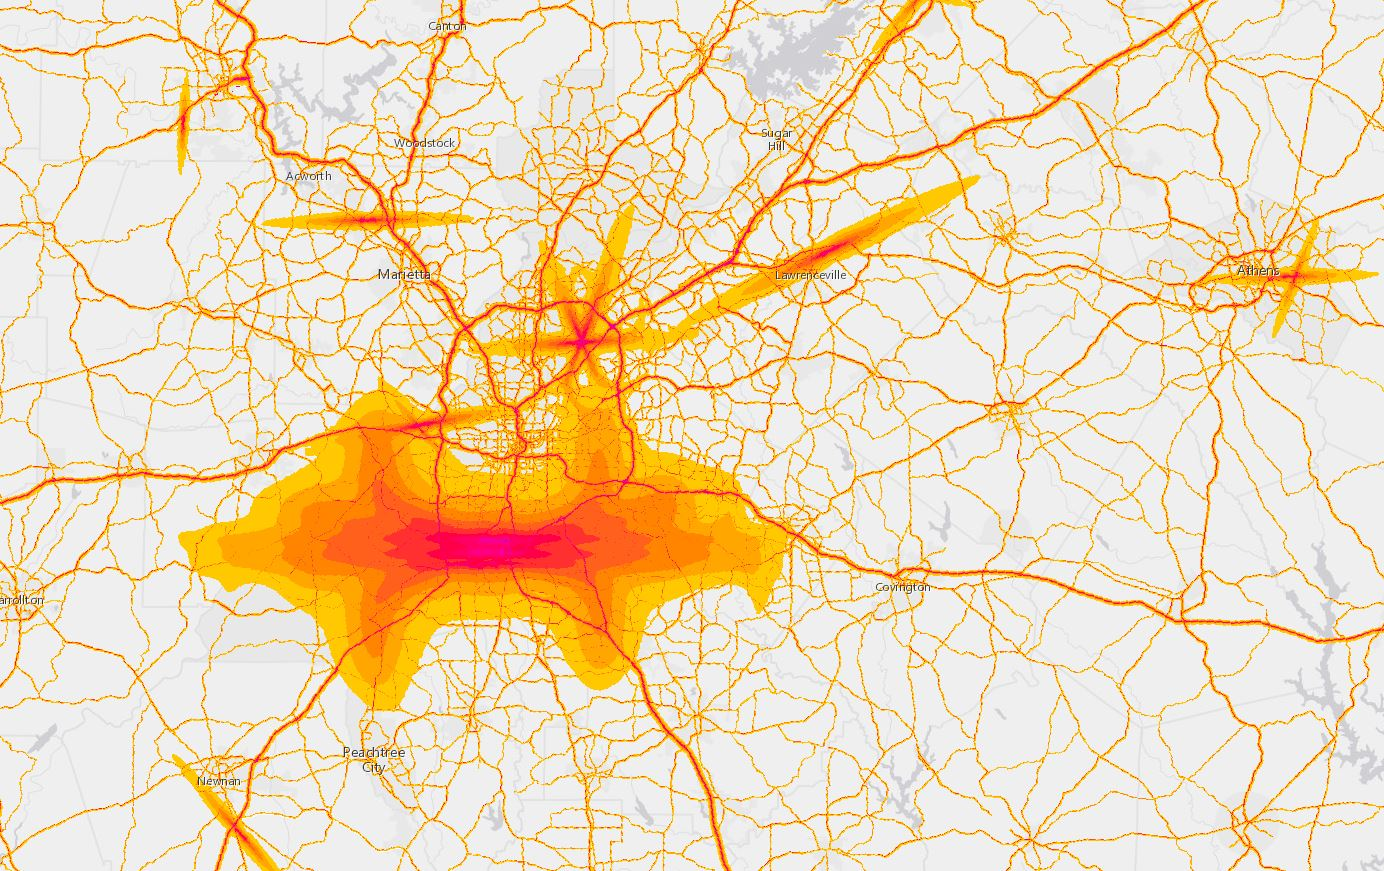 Map of greater Atlanta, with major highways and airports clearly visible in red and yellow, representing noise levels.